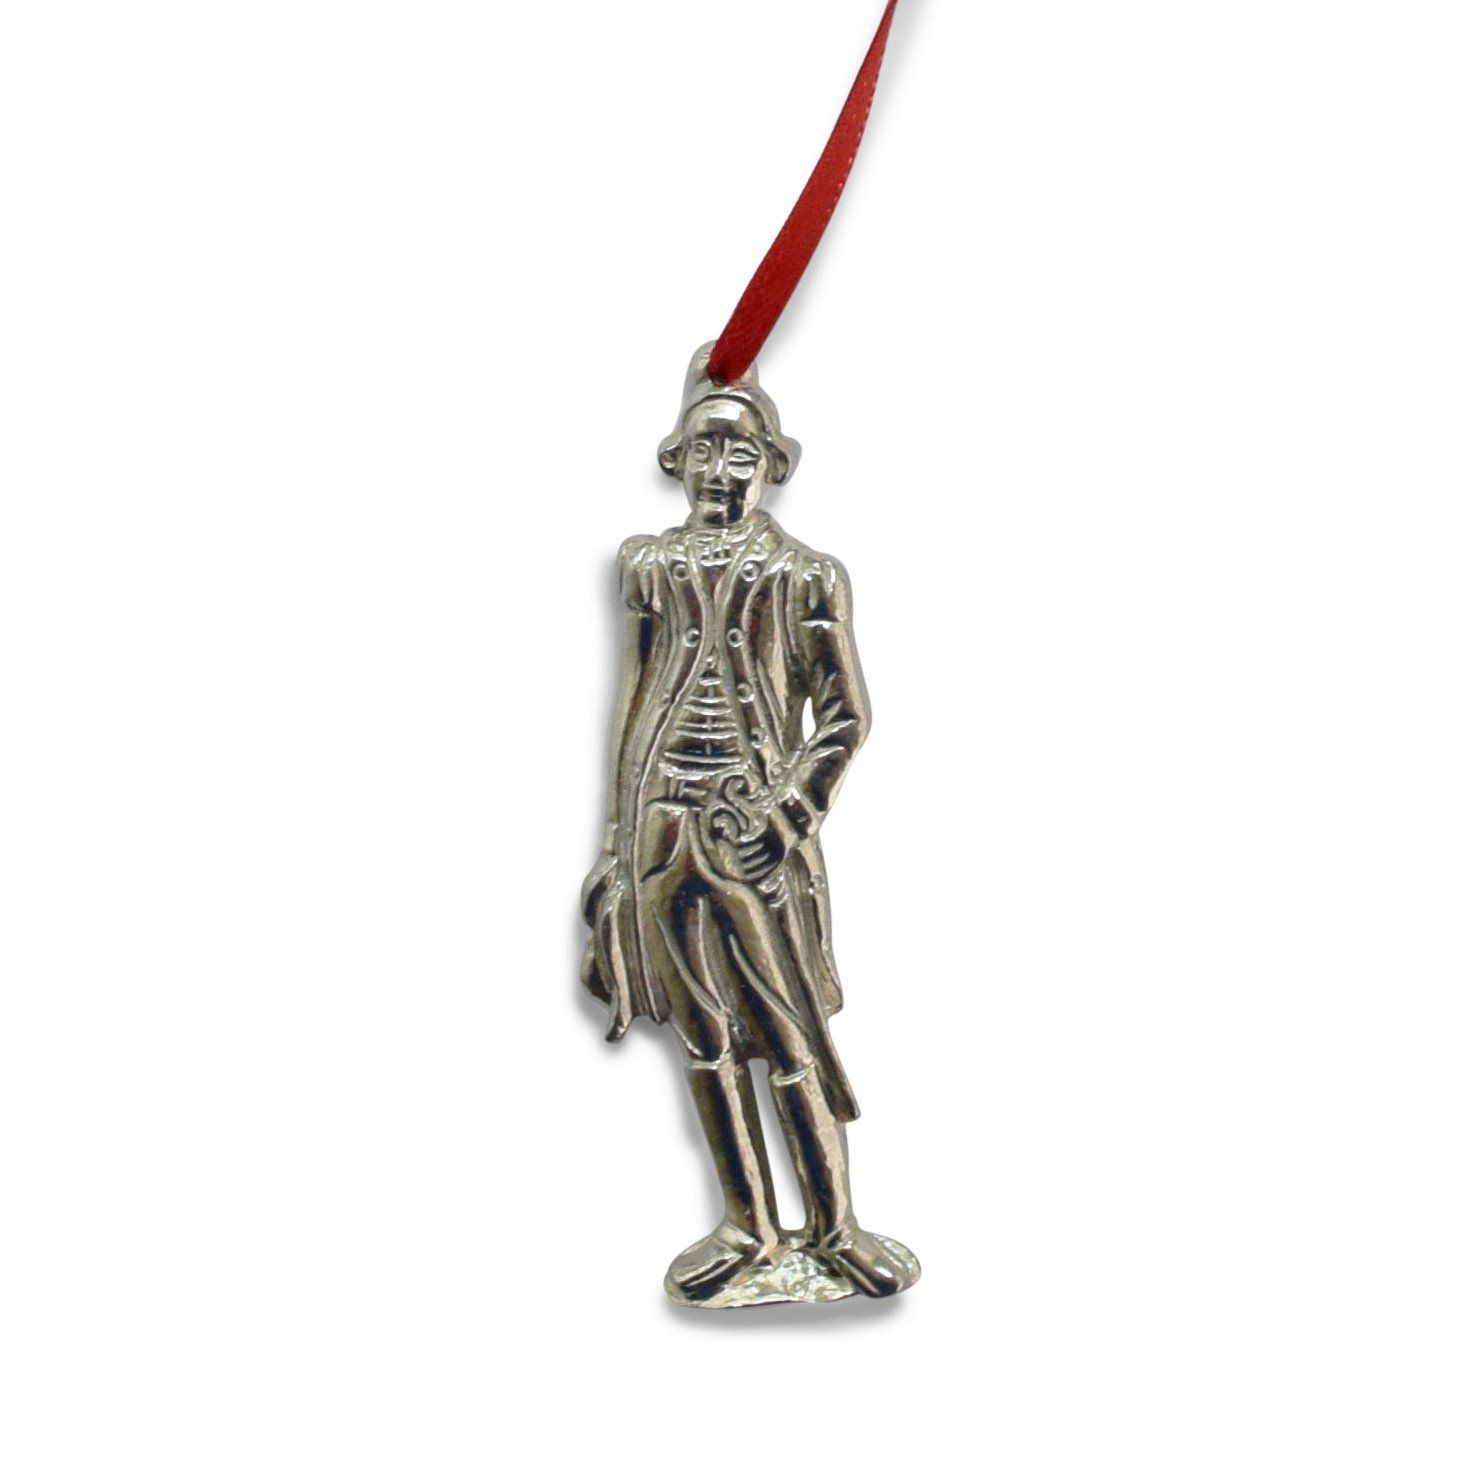 General George Washington Pewter Ornament